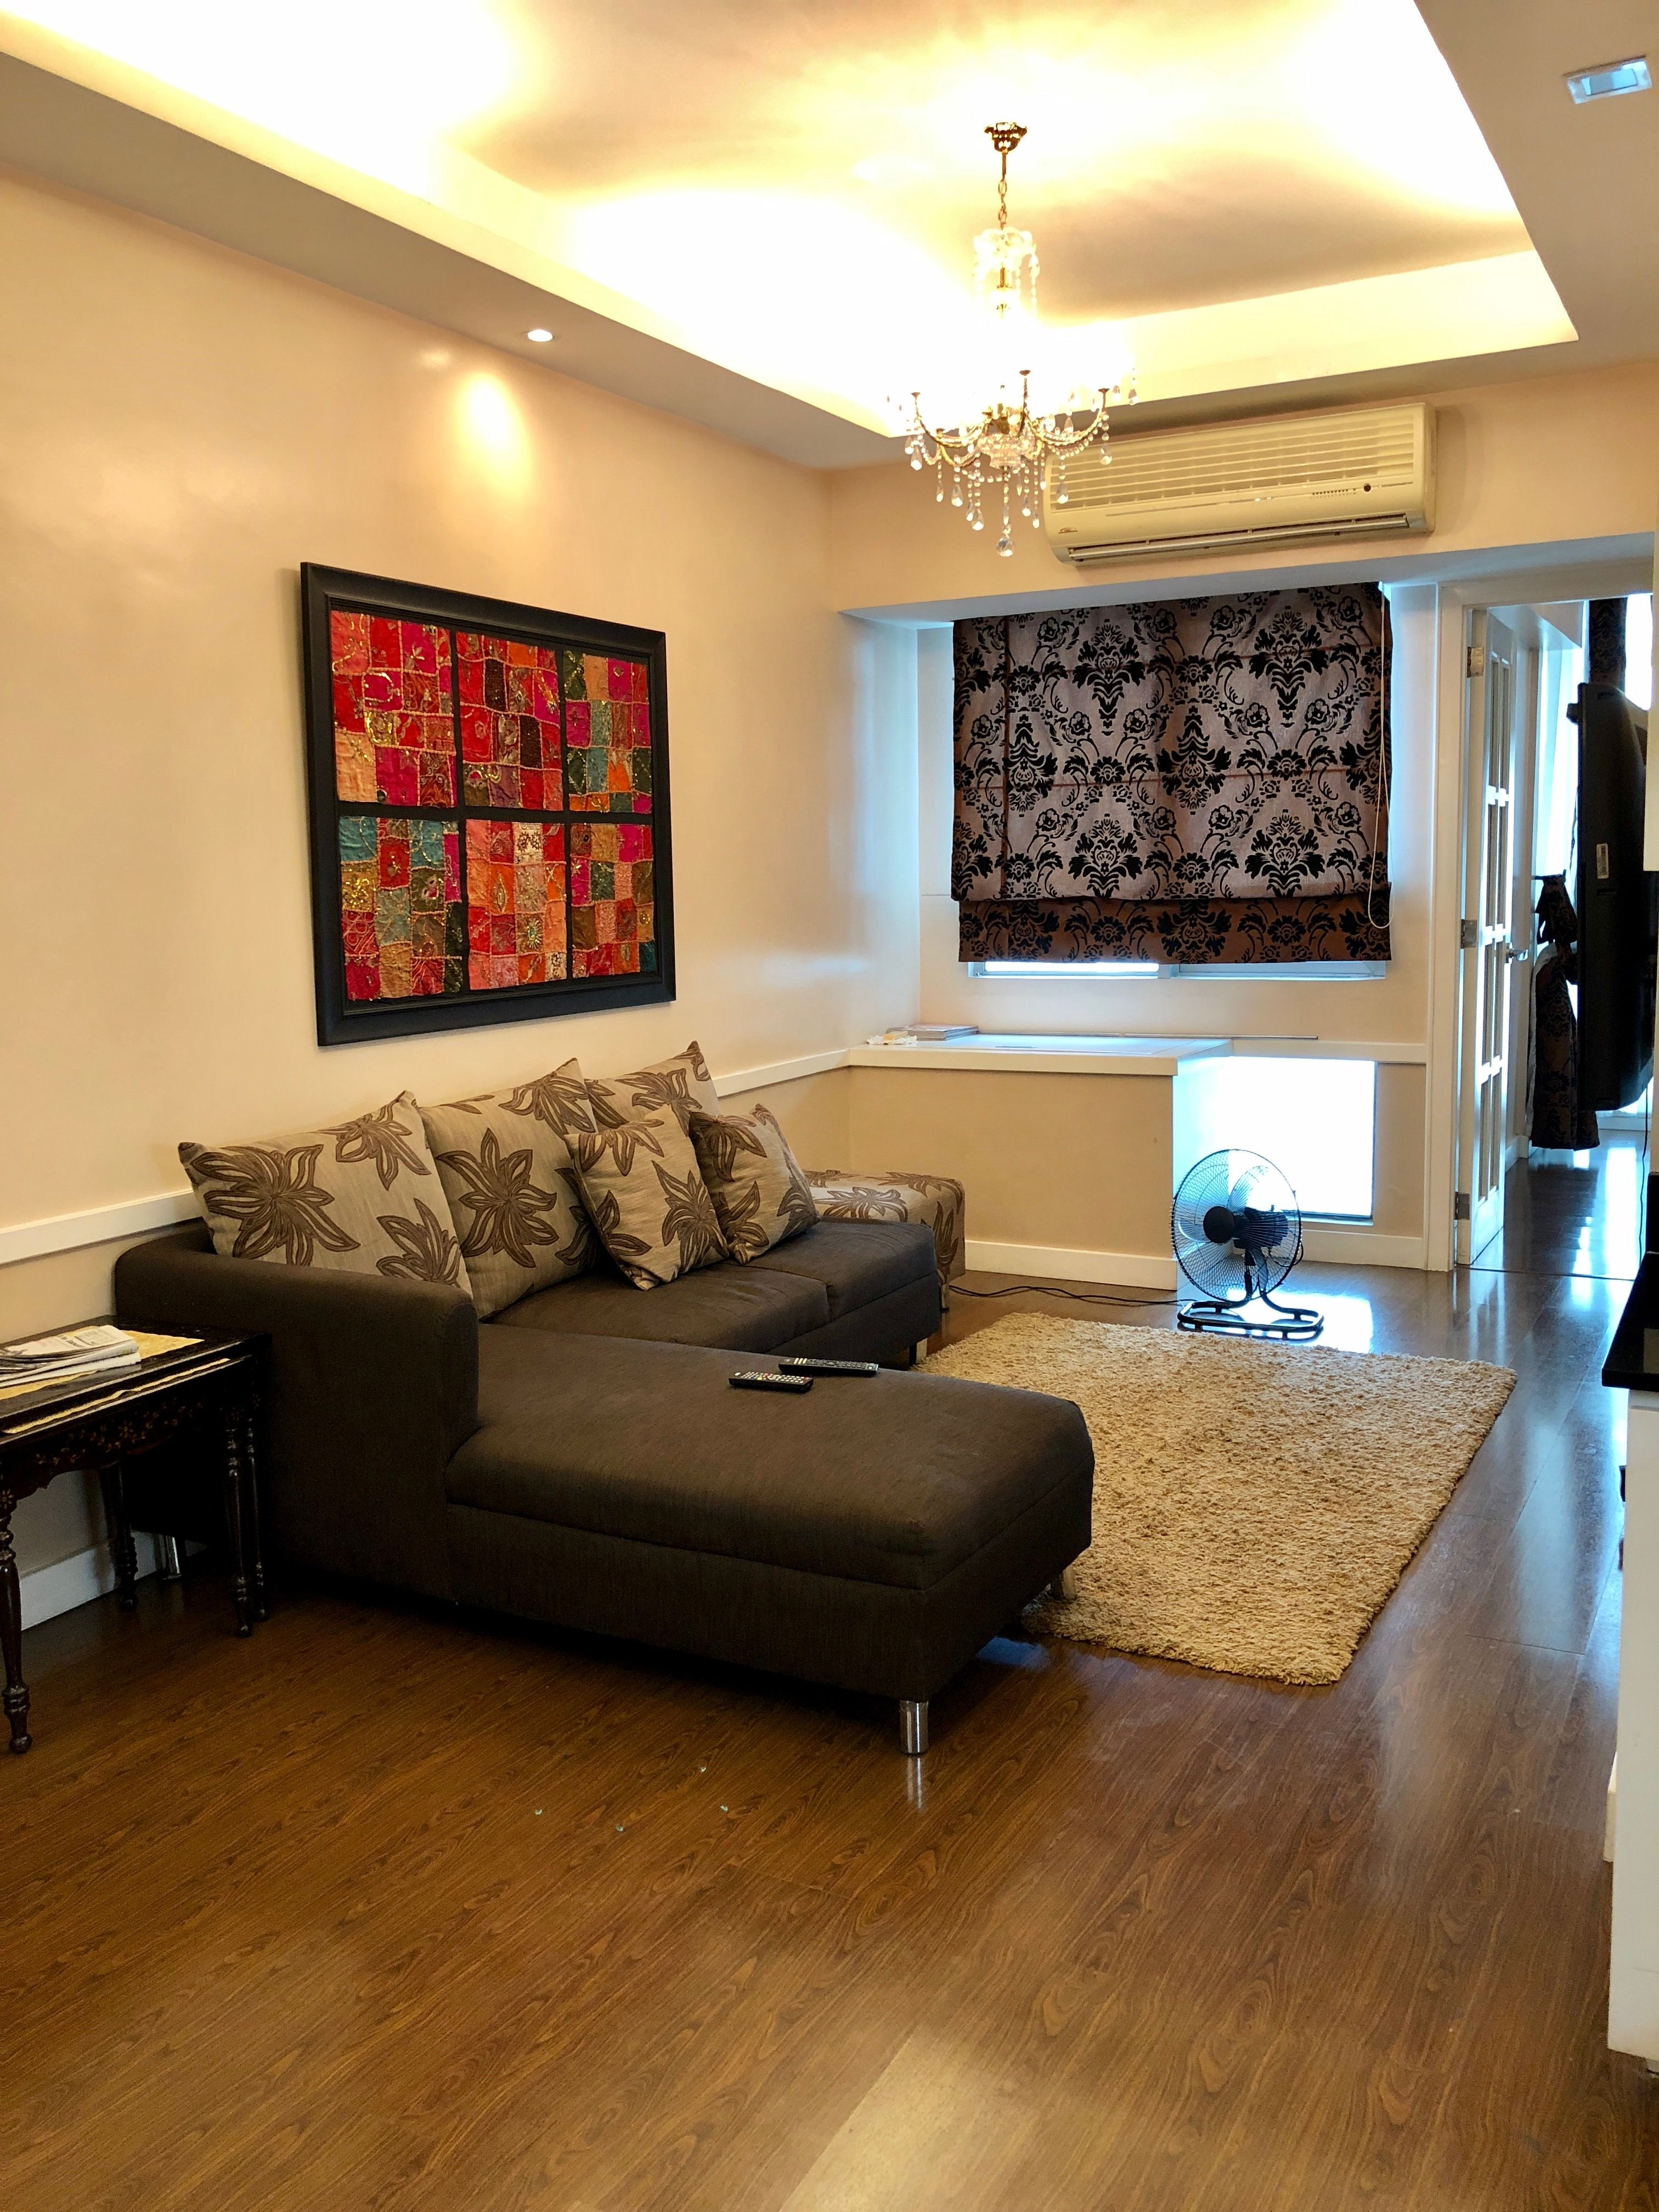 2 Bedroom Condo for Rent in BGC Taguig City, 90sqm, Grand